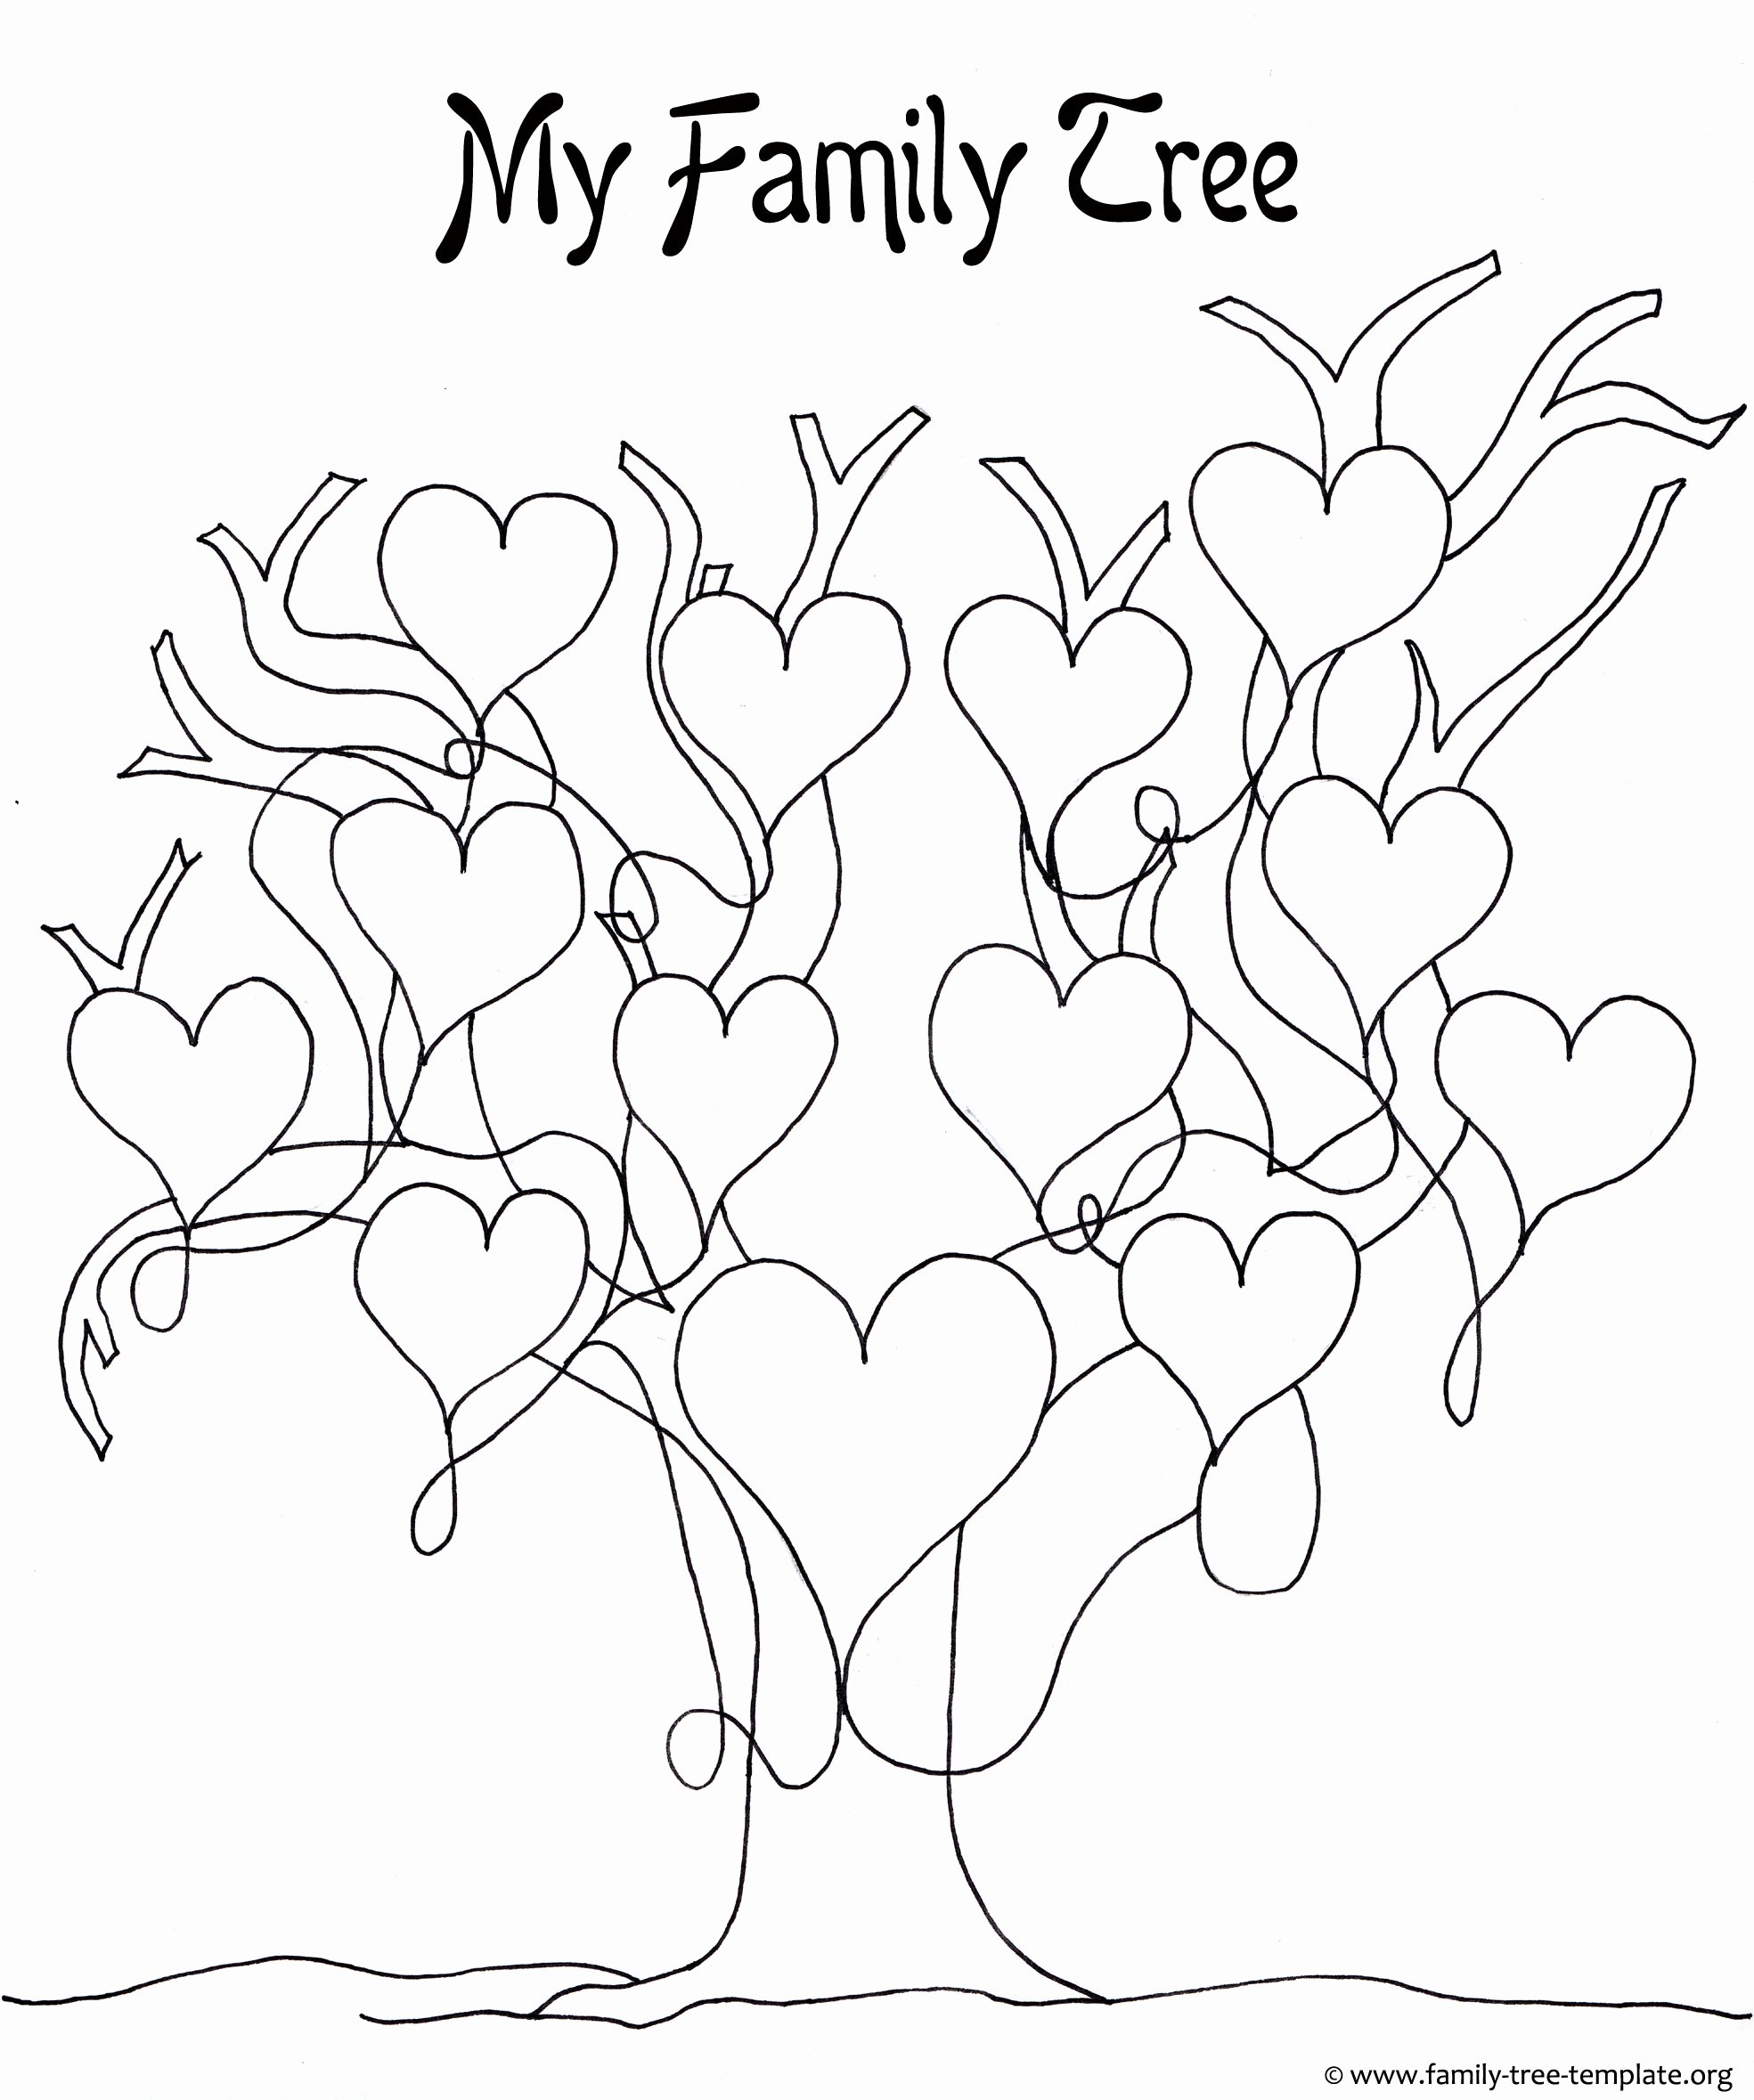 Free Printable Family Tree Unique A Printable Blank Family Tree to Make Your Kids Genealogy